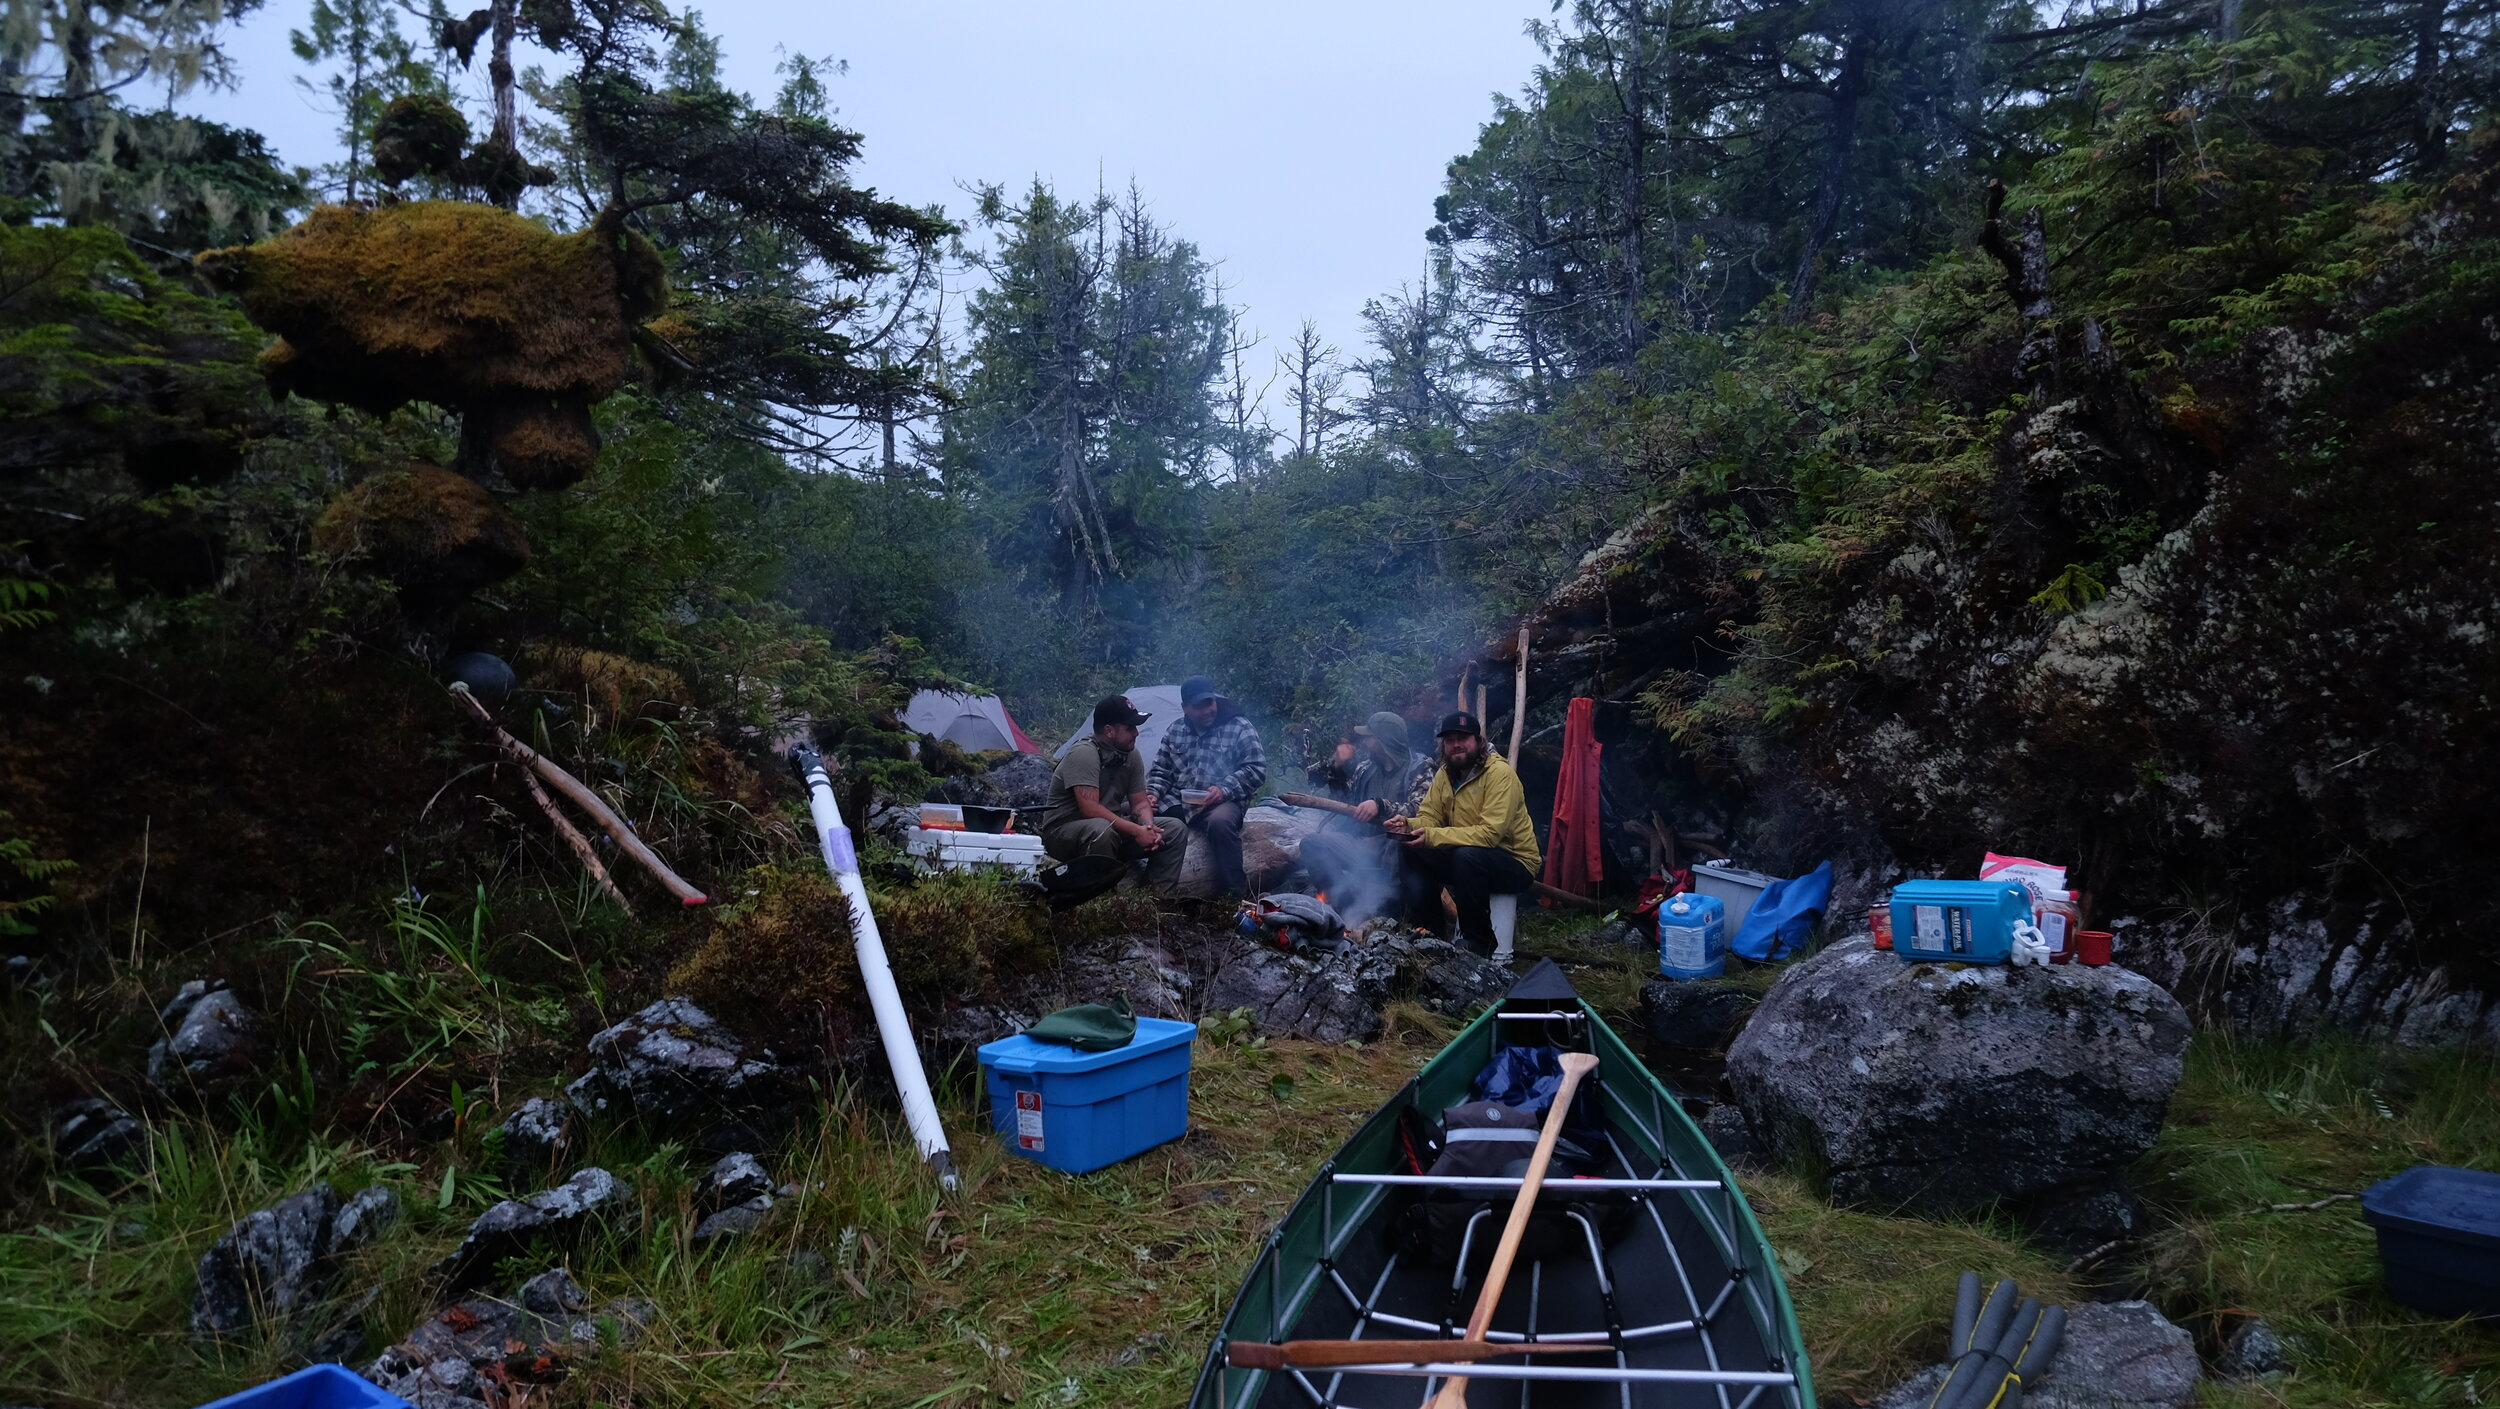 Camp life consisted substantially of trying to stay warm and dry during late summer storms. Photo by J.K. Earnshaw.